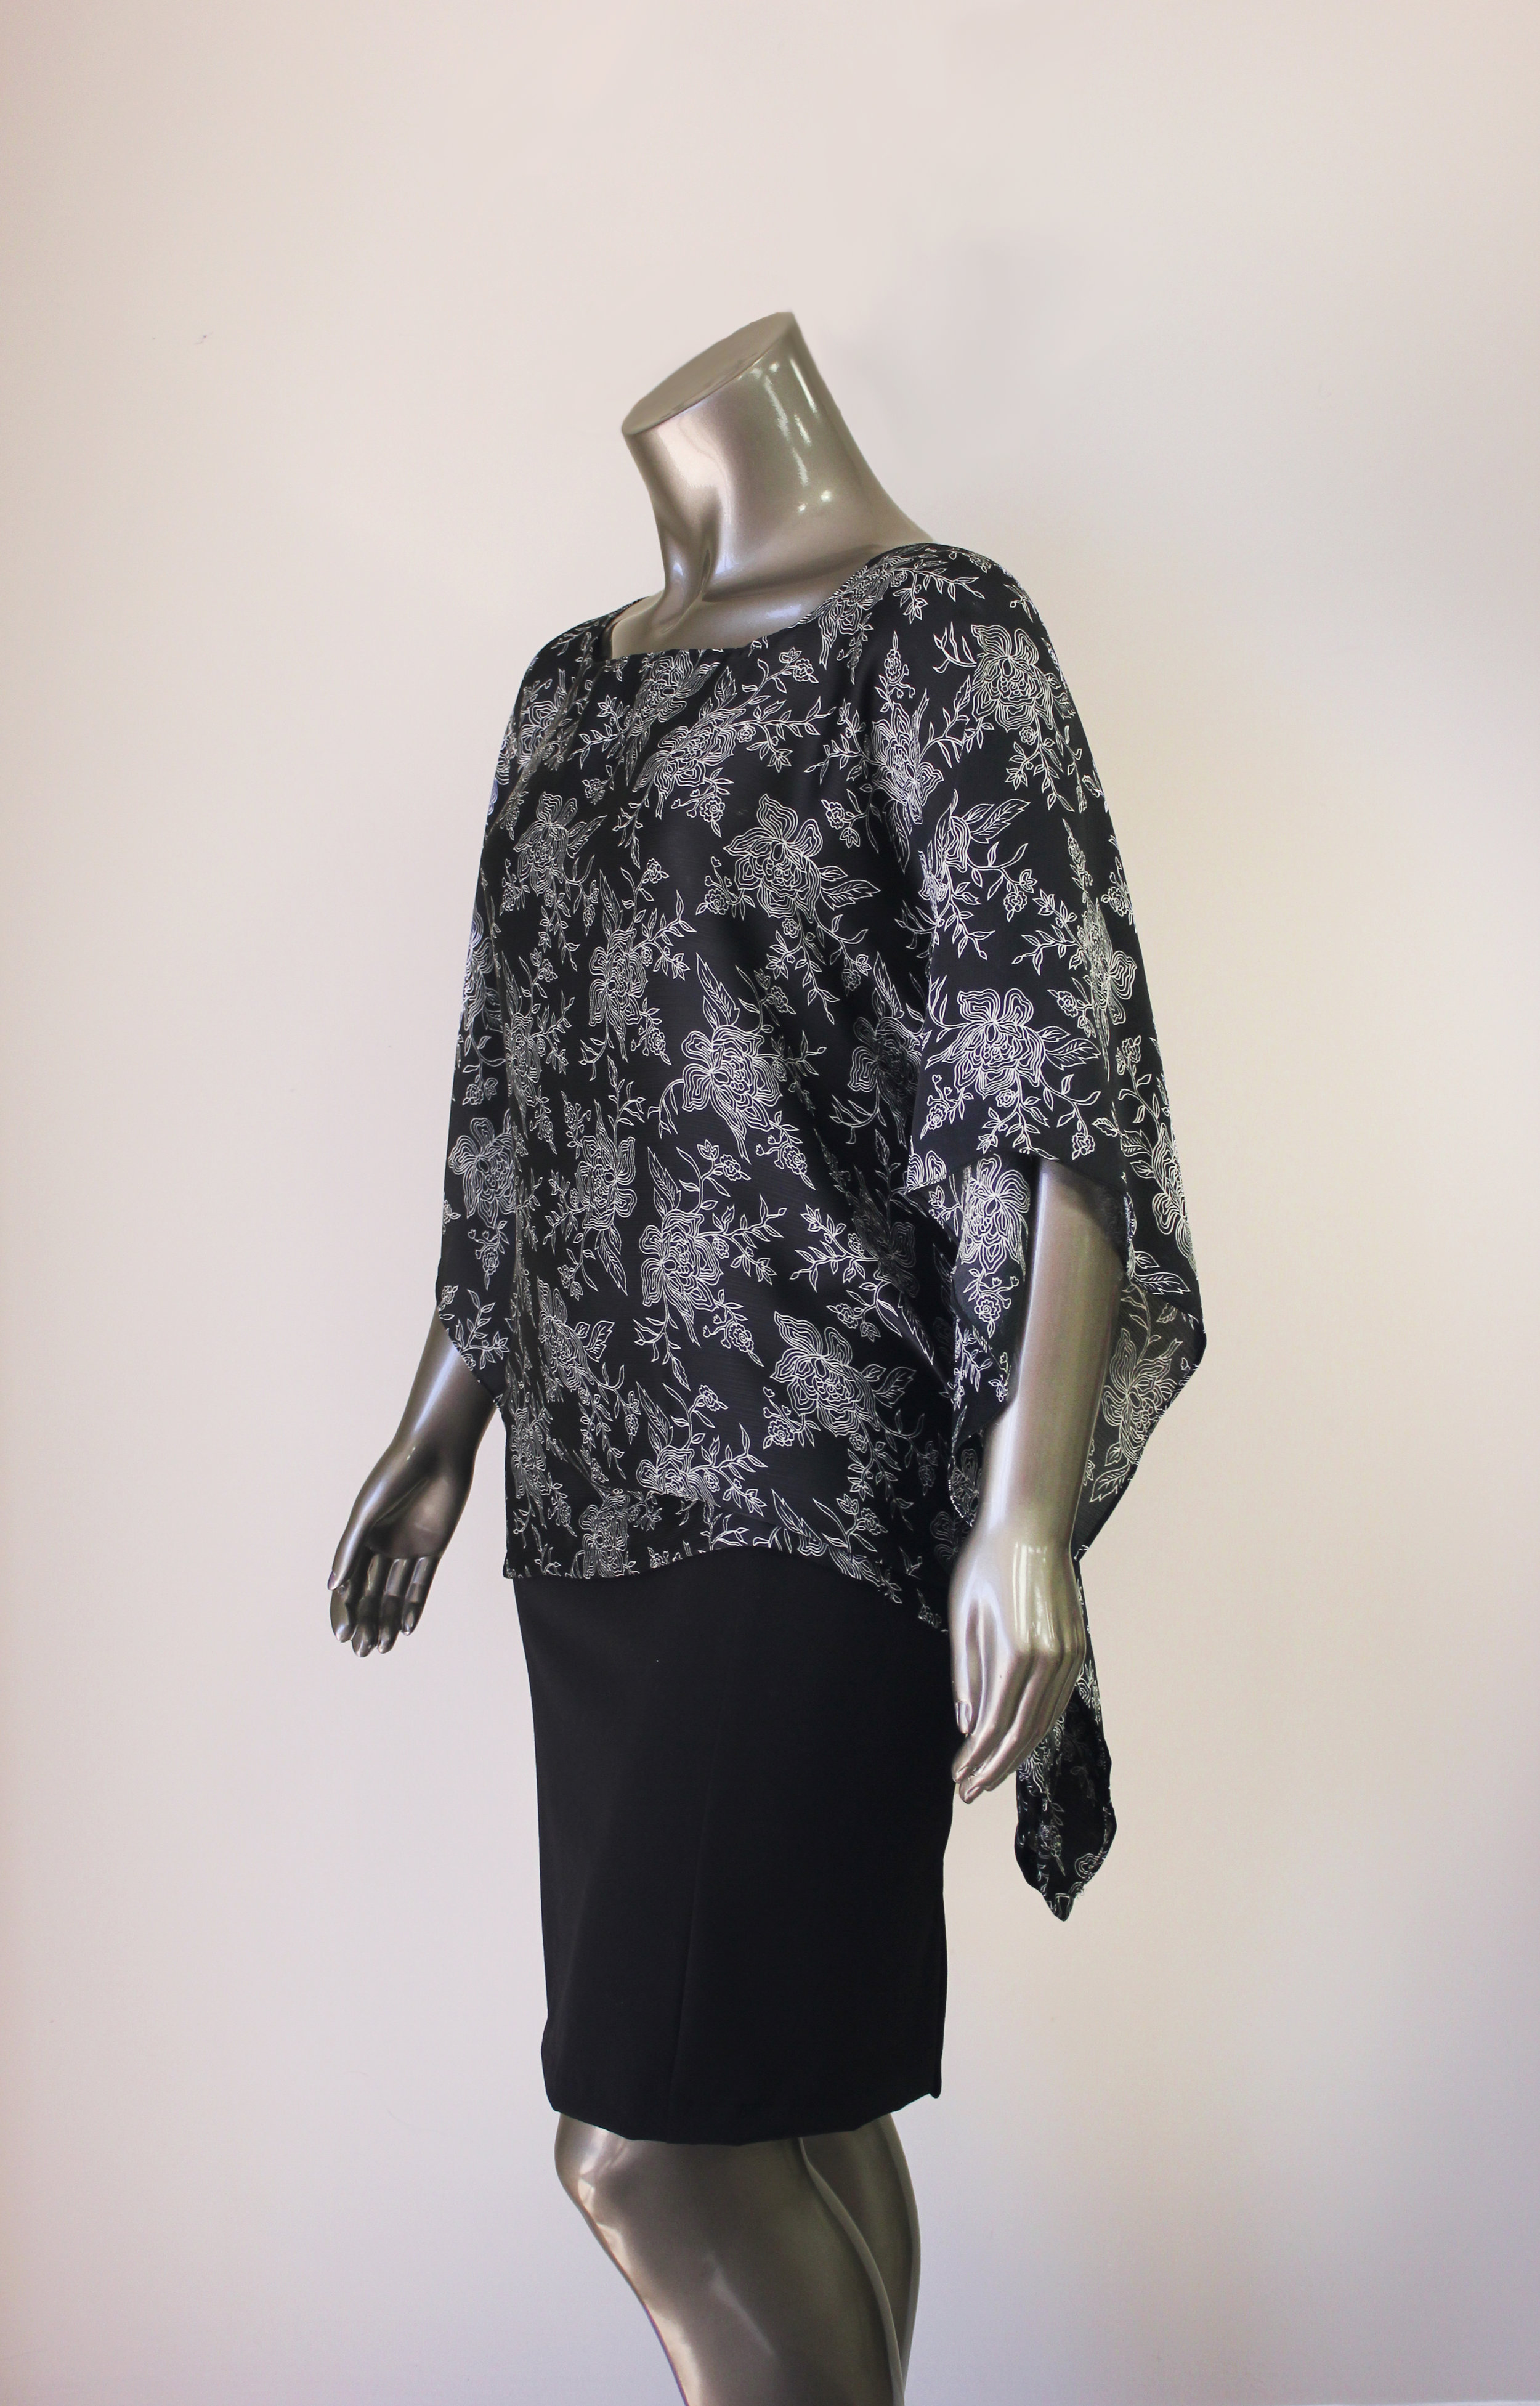 Black and White Floral Blouse - $120 CAD